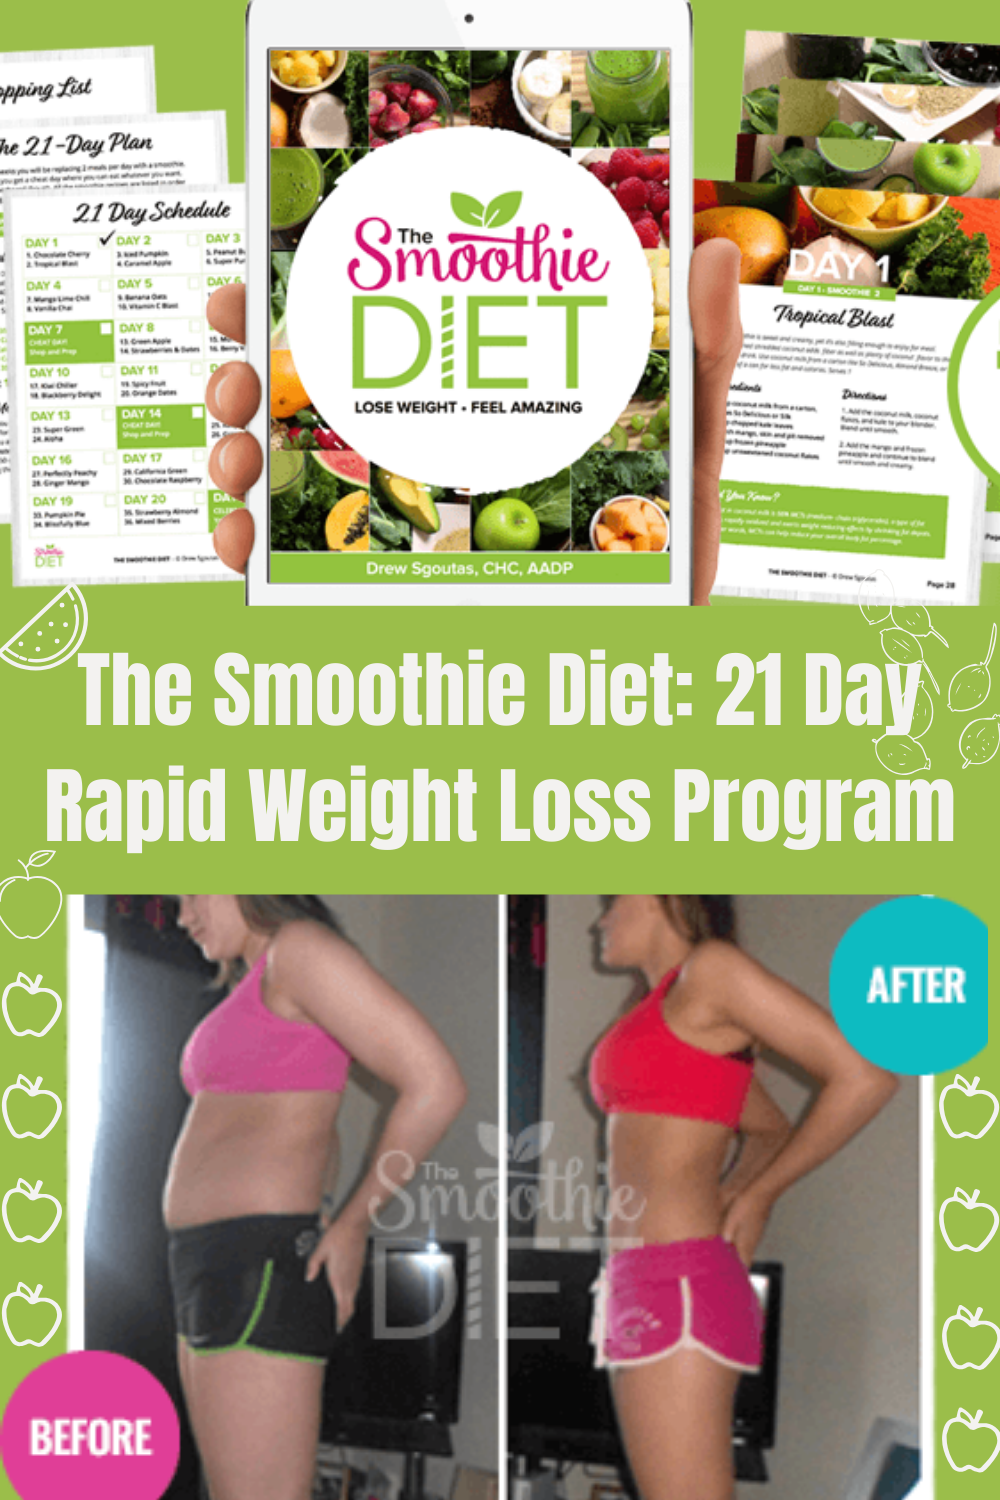 Delicious, Easy-To-Make Smoothies For #RapidWeightLoss , Increased Energy, & Incredible Health #SmoothieRecipes #SmoothieForWeightLossFatBurning #SmoothieDiet #WeightLossSmoothies #WeightLossDrinks #HowToMakeSmoothieBowls